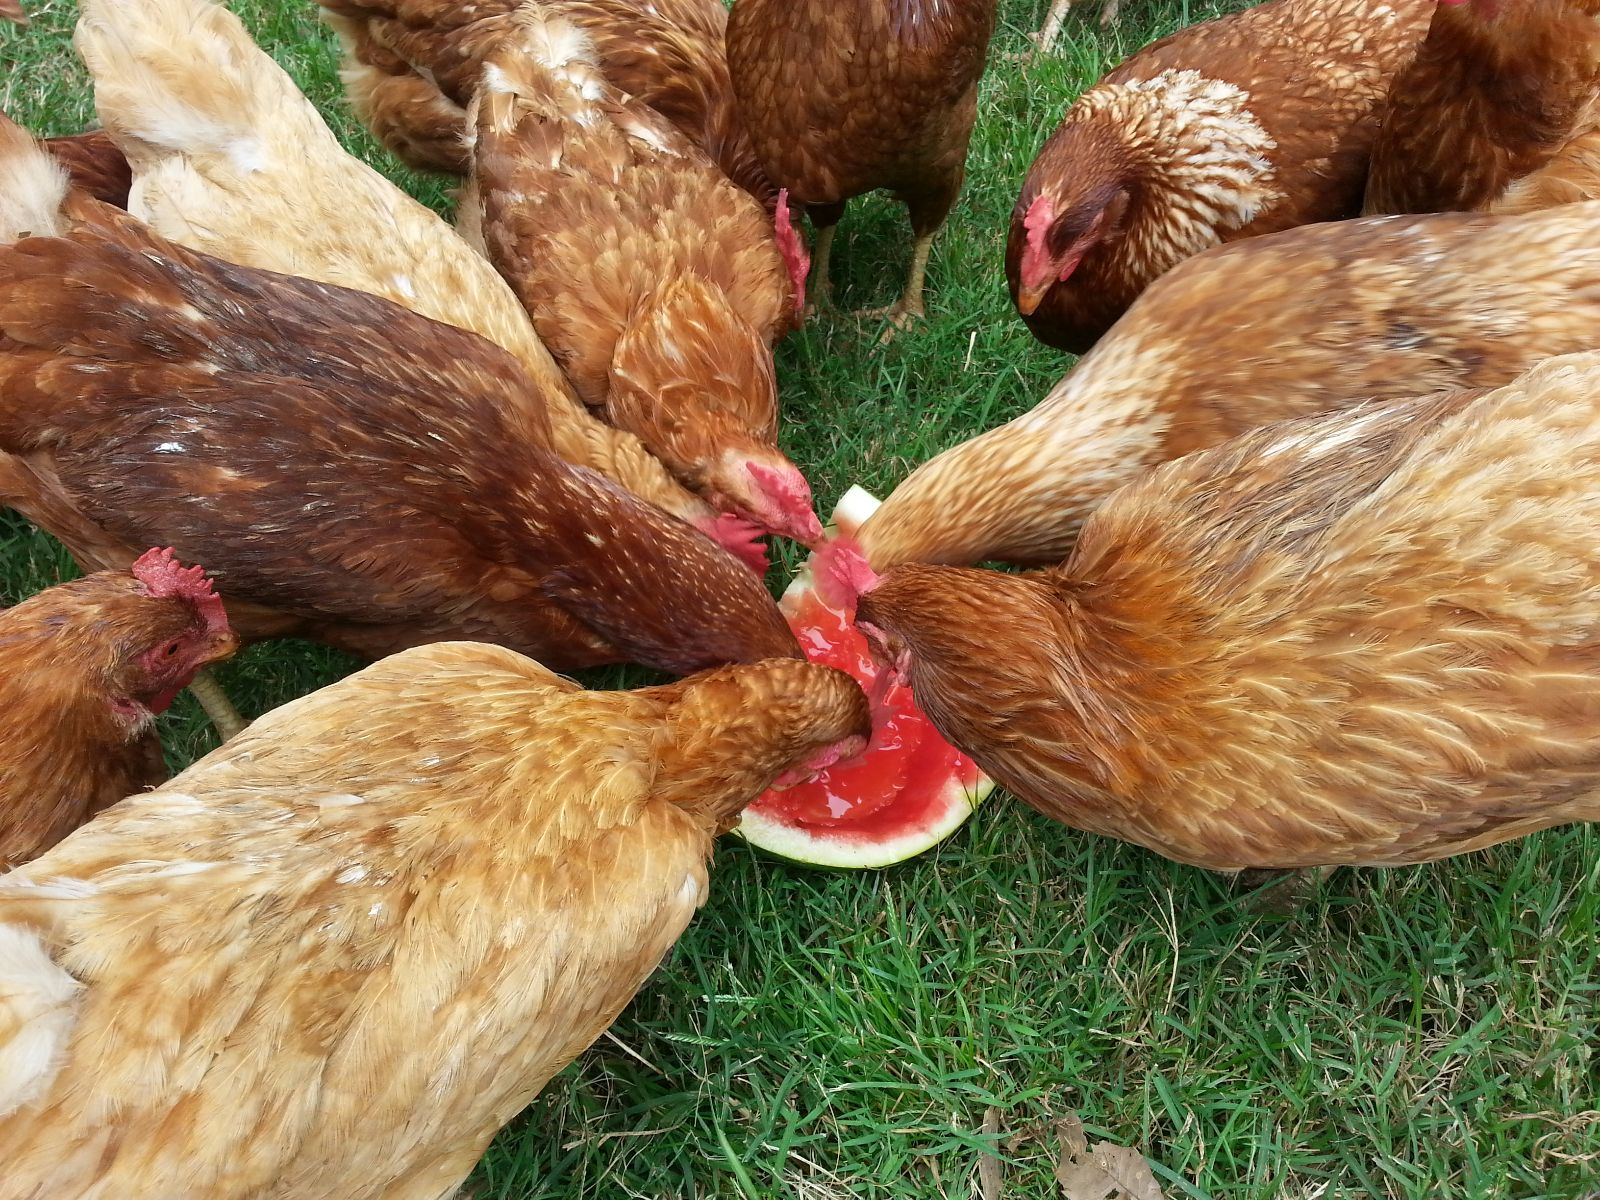 can chickens eat watermelon skin